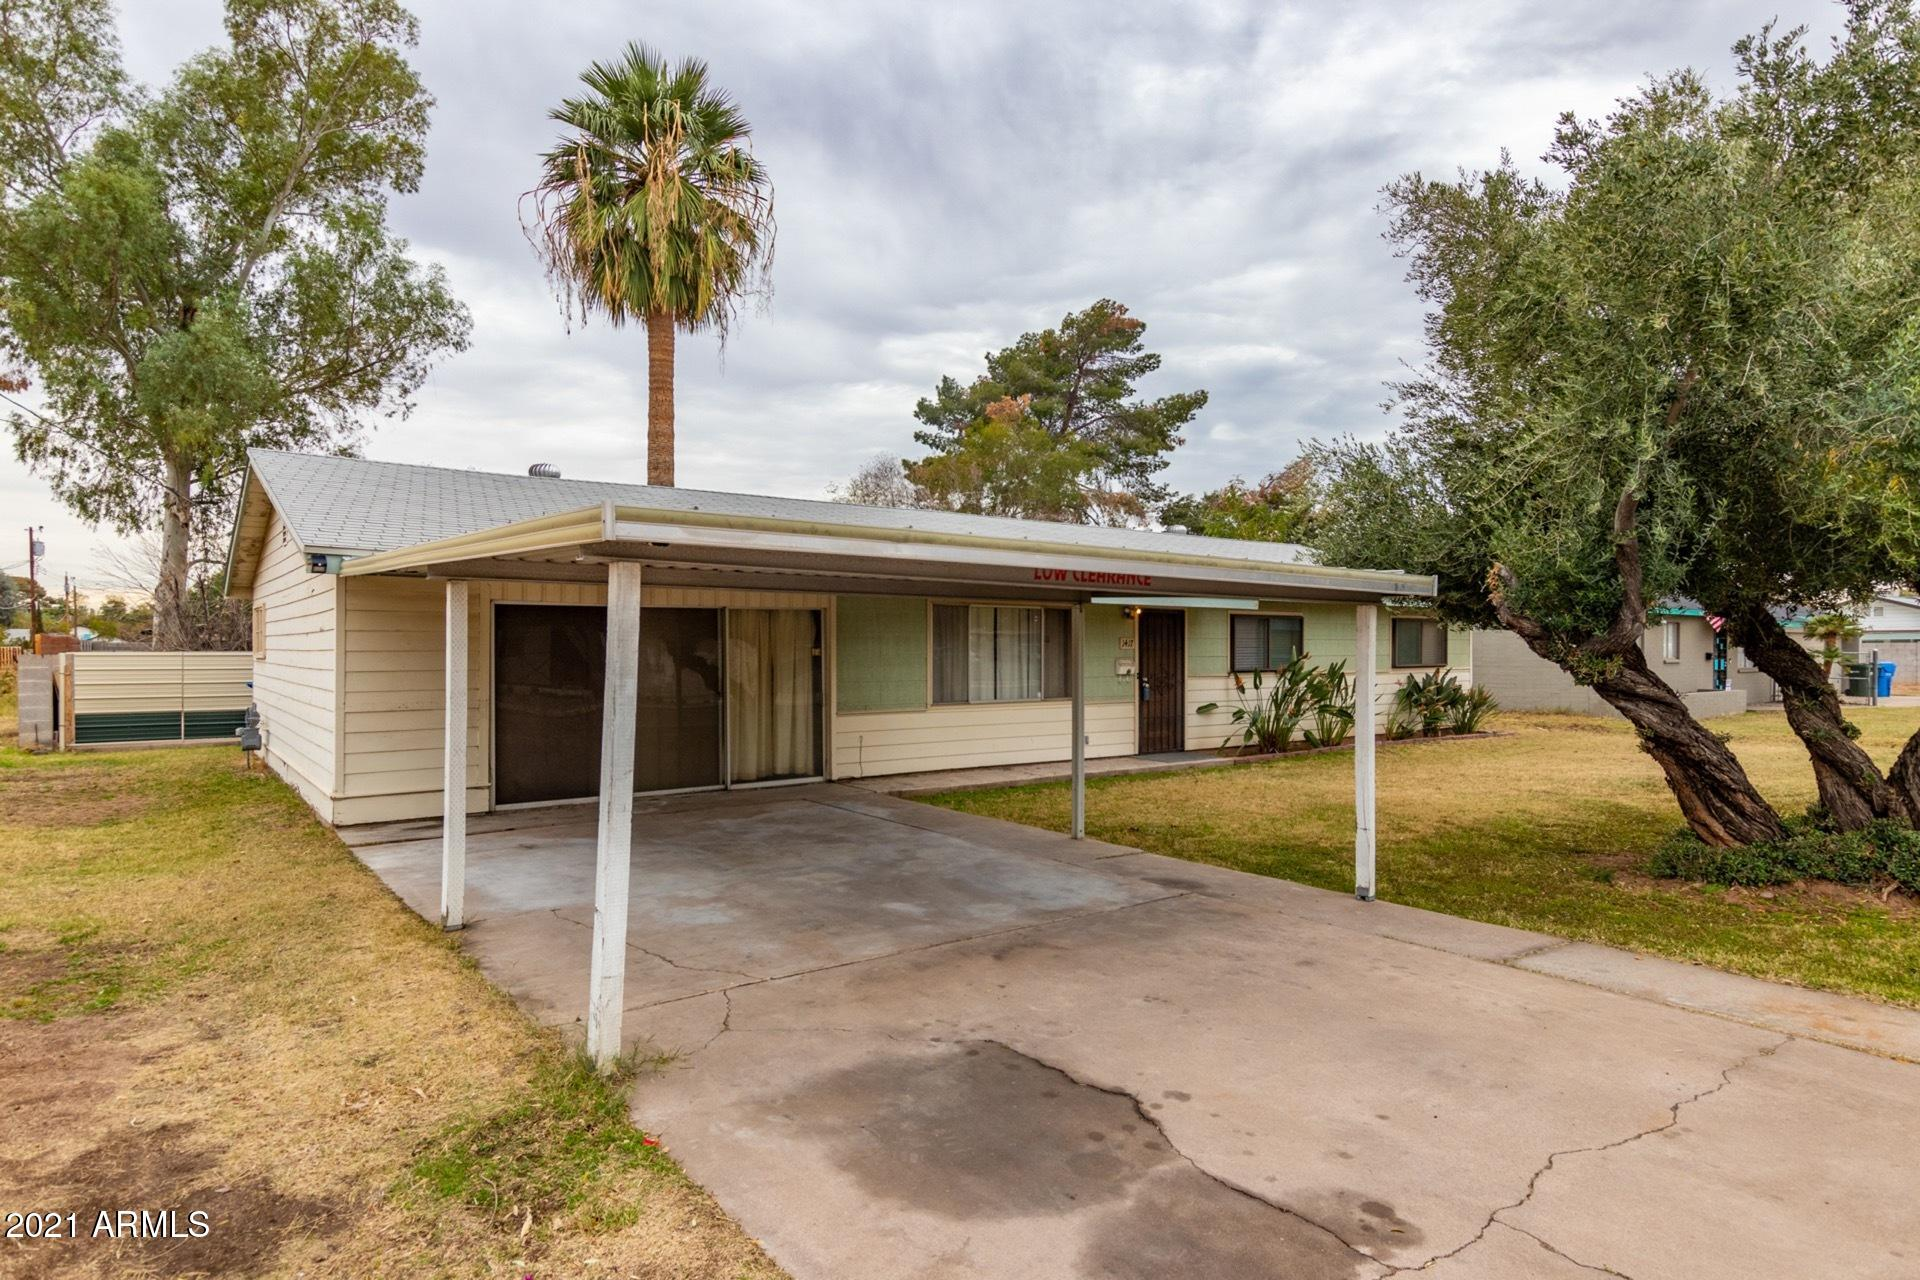 1417 E WHITTON Avenue, Phoenix, AZ 85014, 3 Bedrooms Bedrooms, ,Residential,For Sale,1417 E WHITTON Avenue,6189609